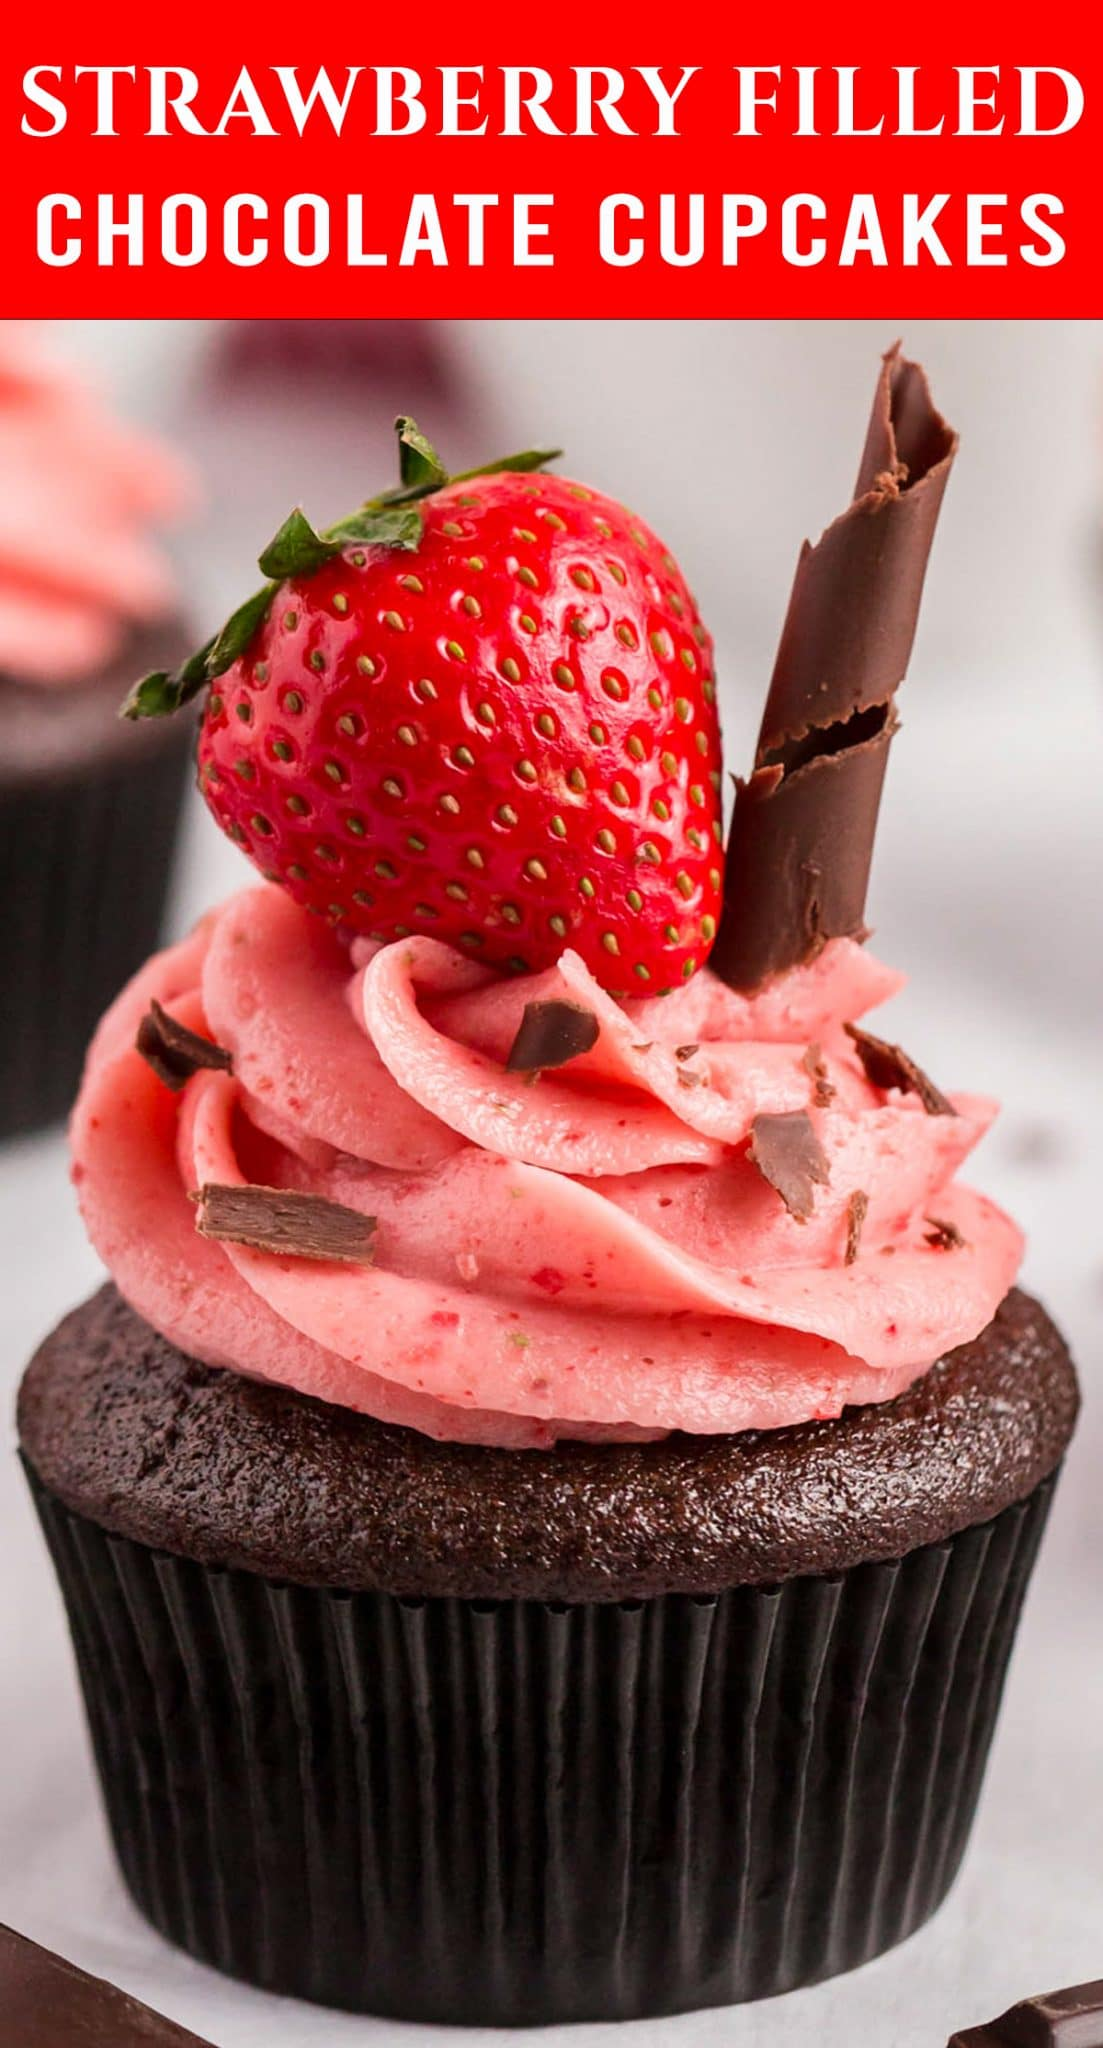 Perfect for Valentine's Day or any day! Soft Chocolate Strawberry Filled Cupcakes have the perfect amount of strawberry flavor. via @thebestcakerecipes